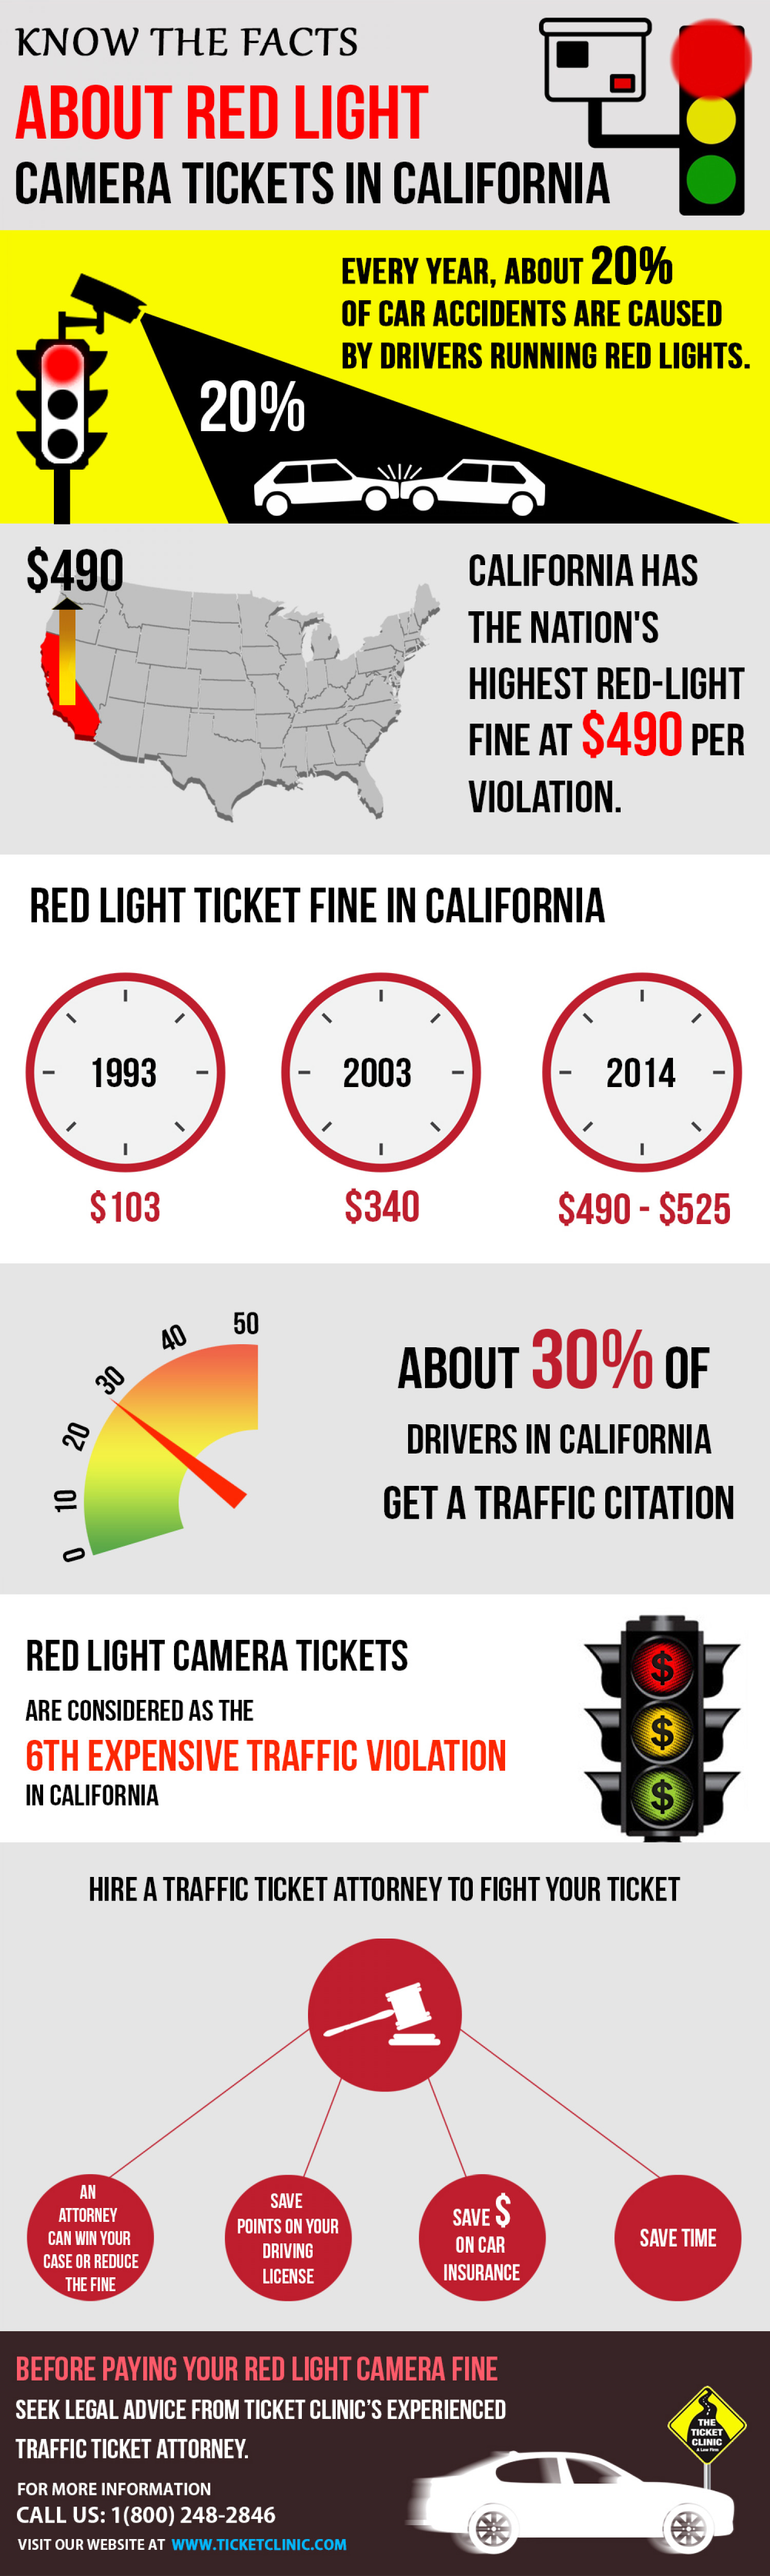 Know The Facts About Red Light Camera Tickets In California Infographic